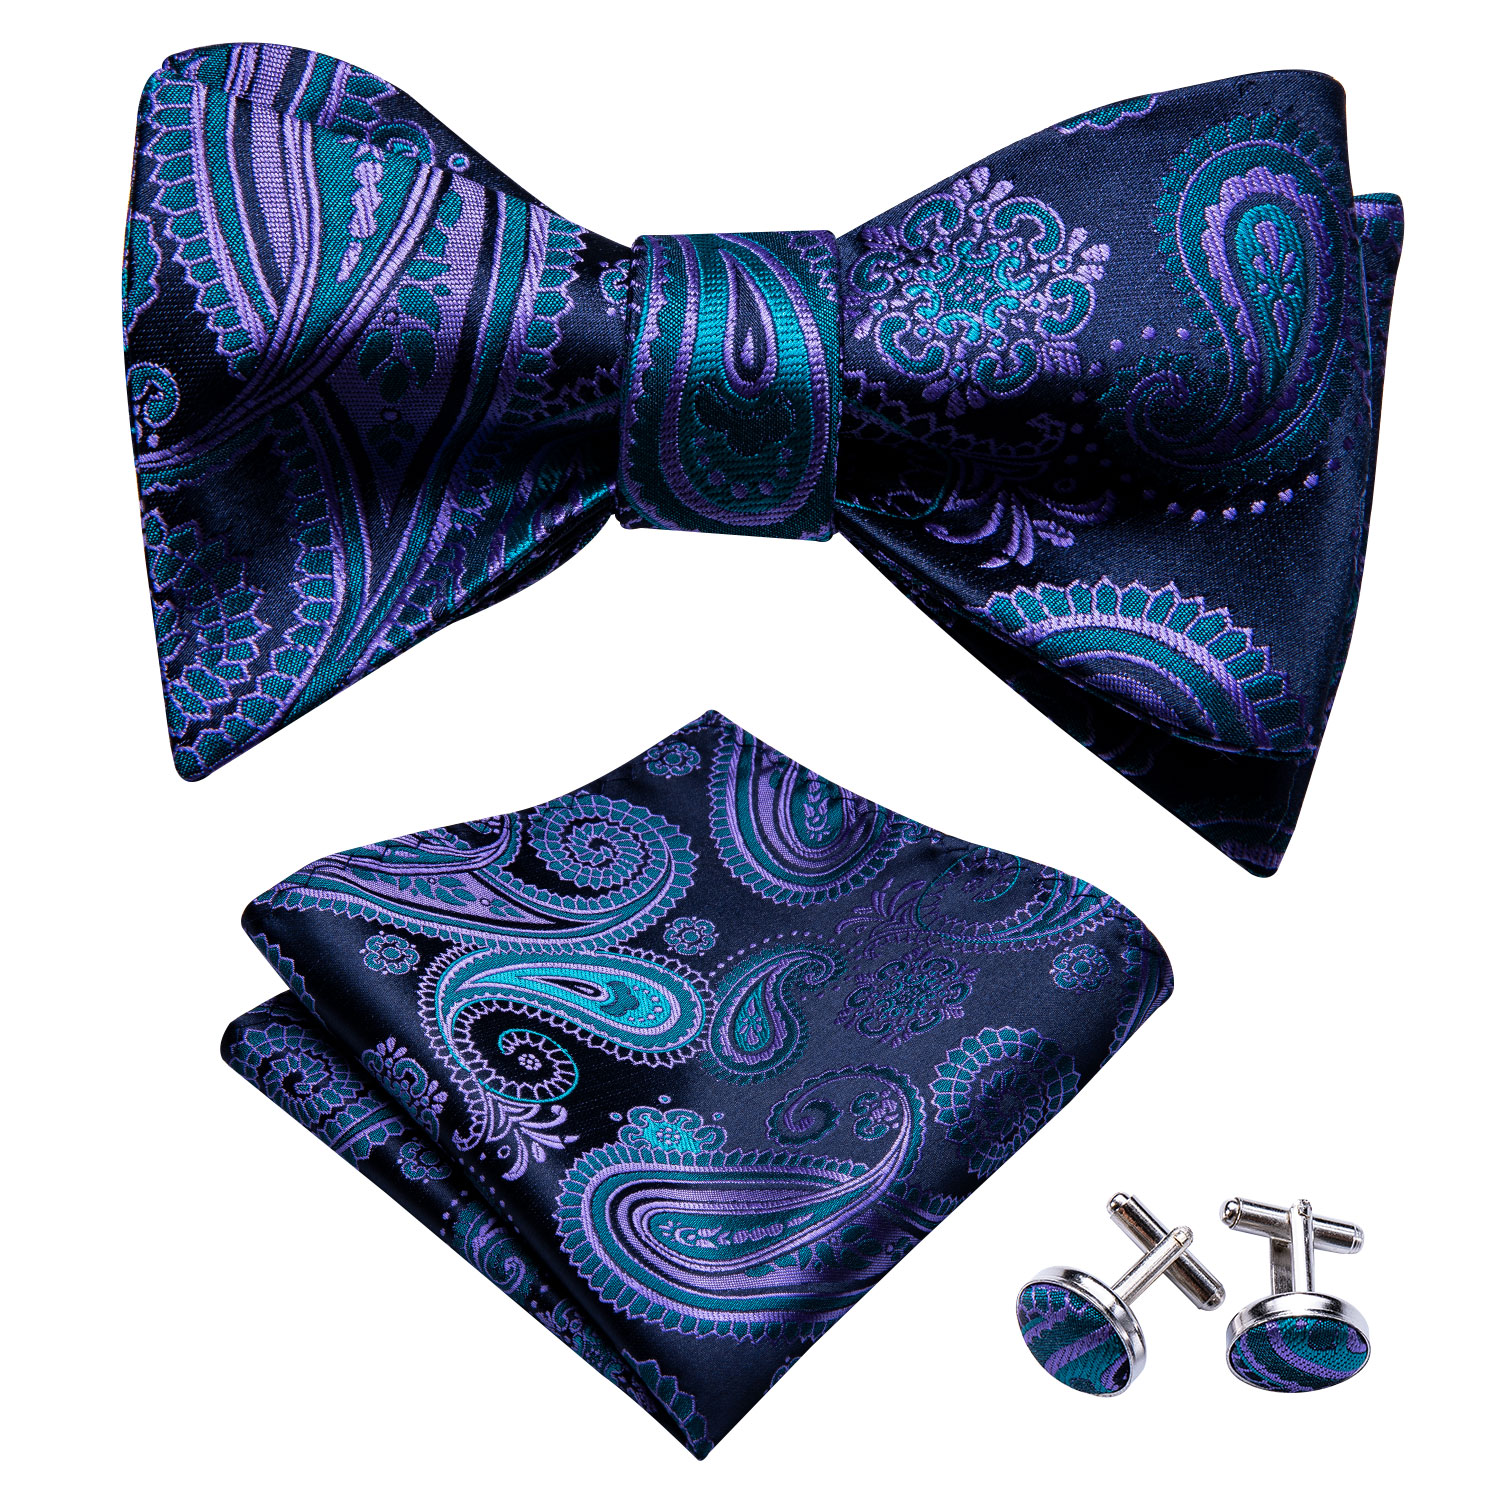 Self Bow Tie For Men Silk Butterfly Men Tie Blue Purple Paisley Hanky Cufflinks Suit Collar Removable Necktie Barry.Wang LH-1015